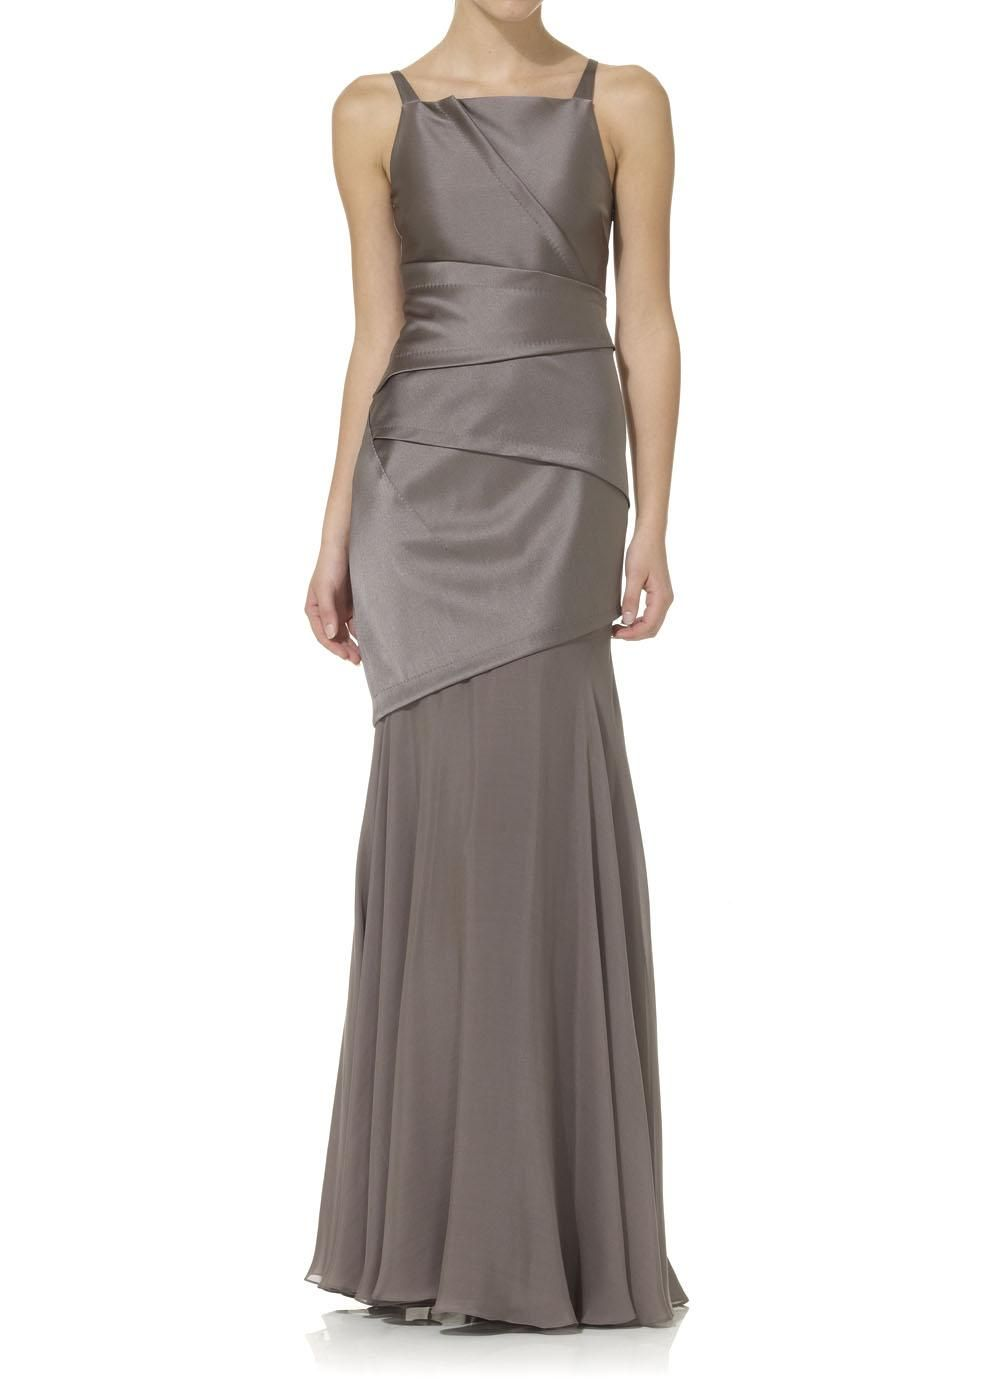 http://www.amandawakeley.com/shop/womenswear/double-satin-high-neck-long-dress-with-chiffon-skirt-12.html#